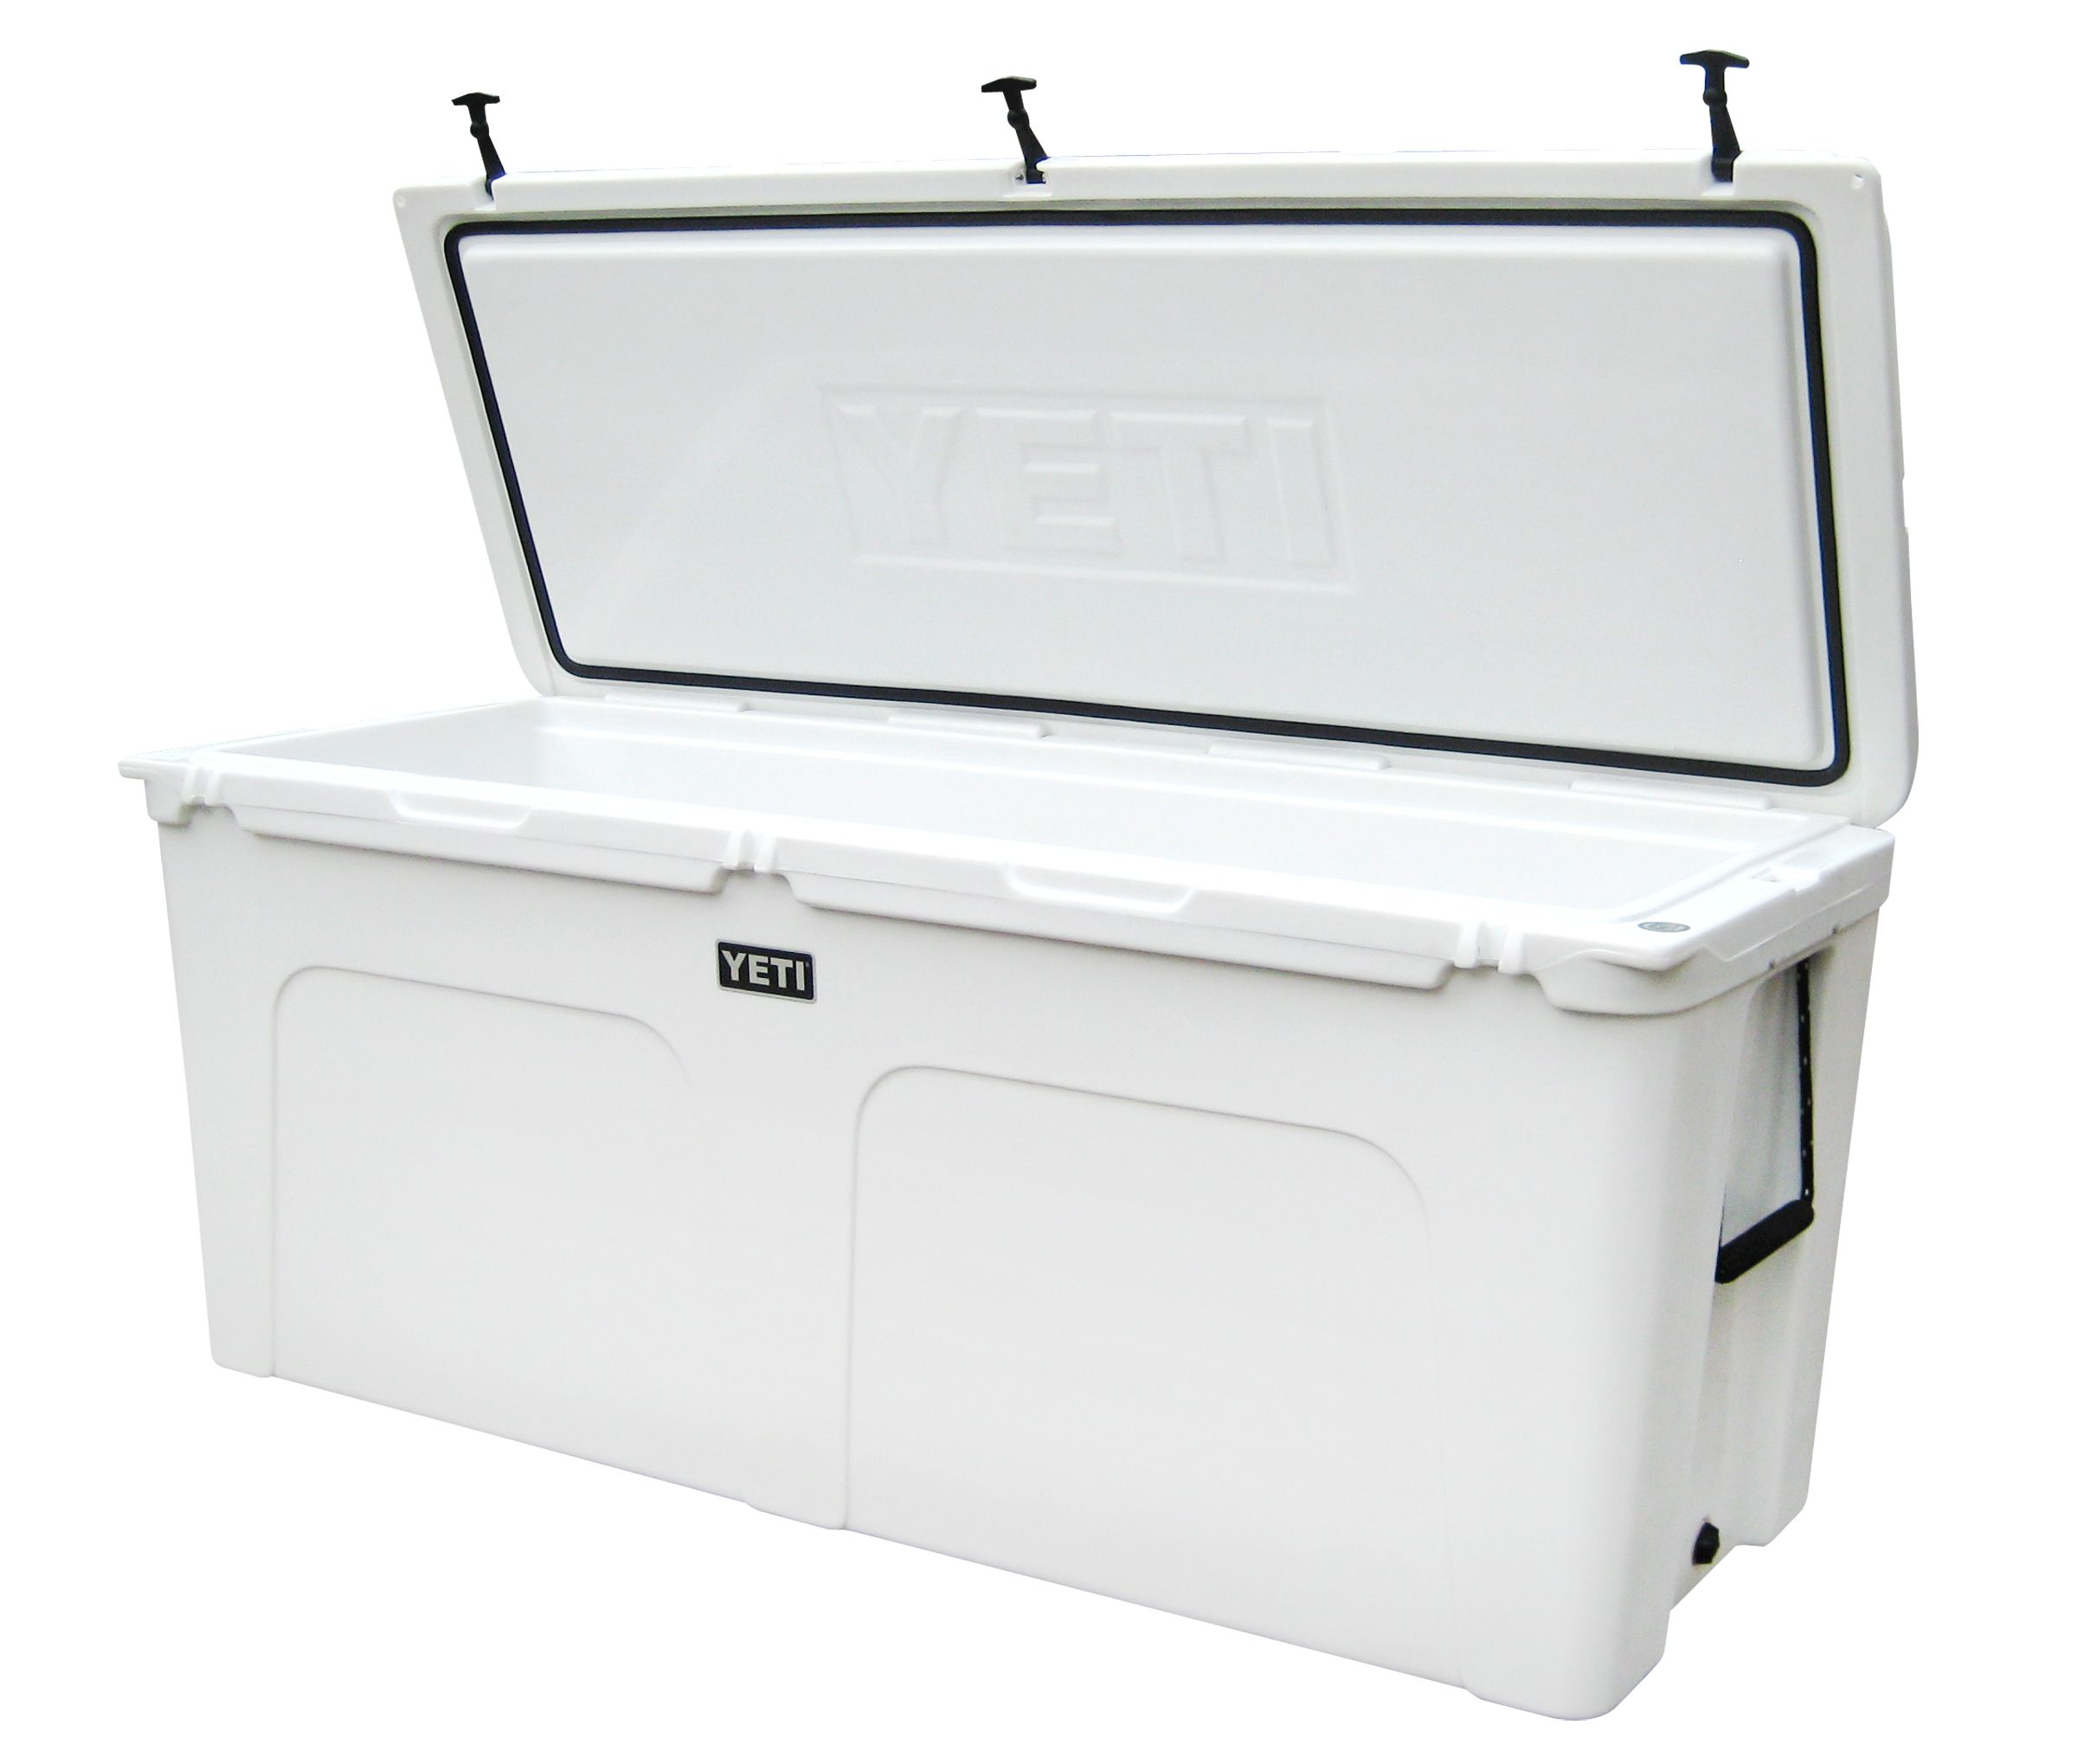 Yeti Tundra 420 White Or Desert Tan An Extreme Example Of How Durable And Insulated A Cooler Can Be 1299 99 Yeti Cooler Cooler Yeti Tundra